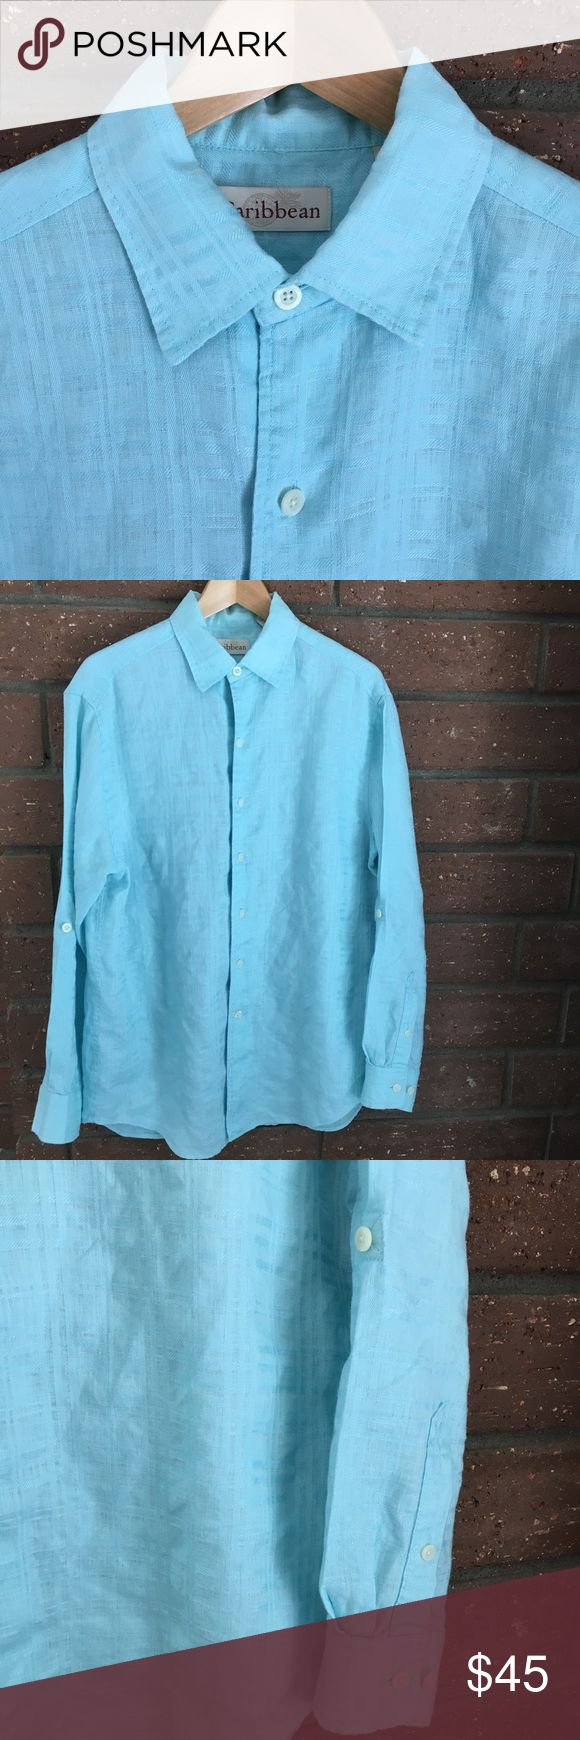 """🆕 Light Blue Linen Dress Shirt Light blue long sleeve or roll up with buttoned tab casual dress shirt. Woven material content is 88% Linen & 12% Cotton. Measurements flat are 22.5"""" pit to pit & 30"""" long. In excellent condition with NO spots or damage. Caribbean Shirts Casual Button Down Shirts"""